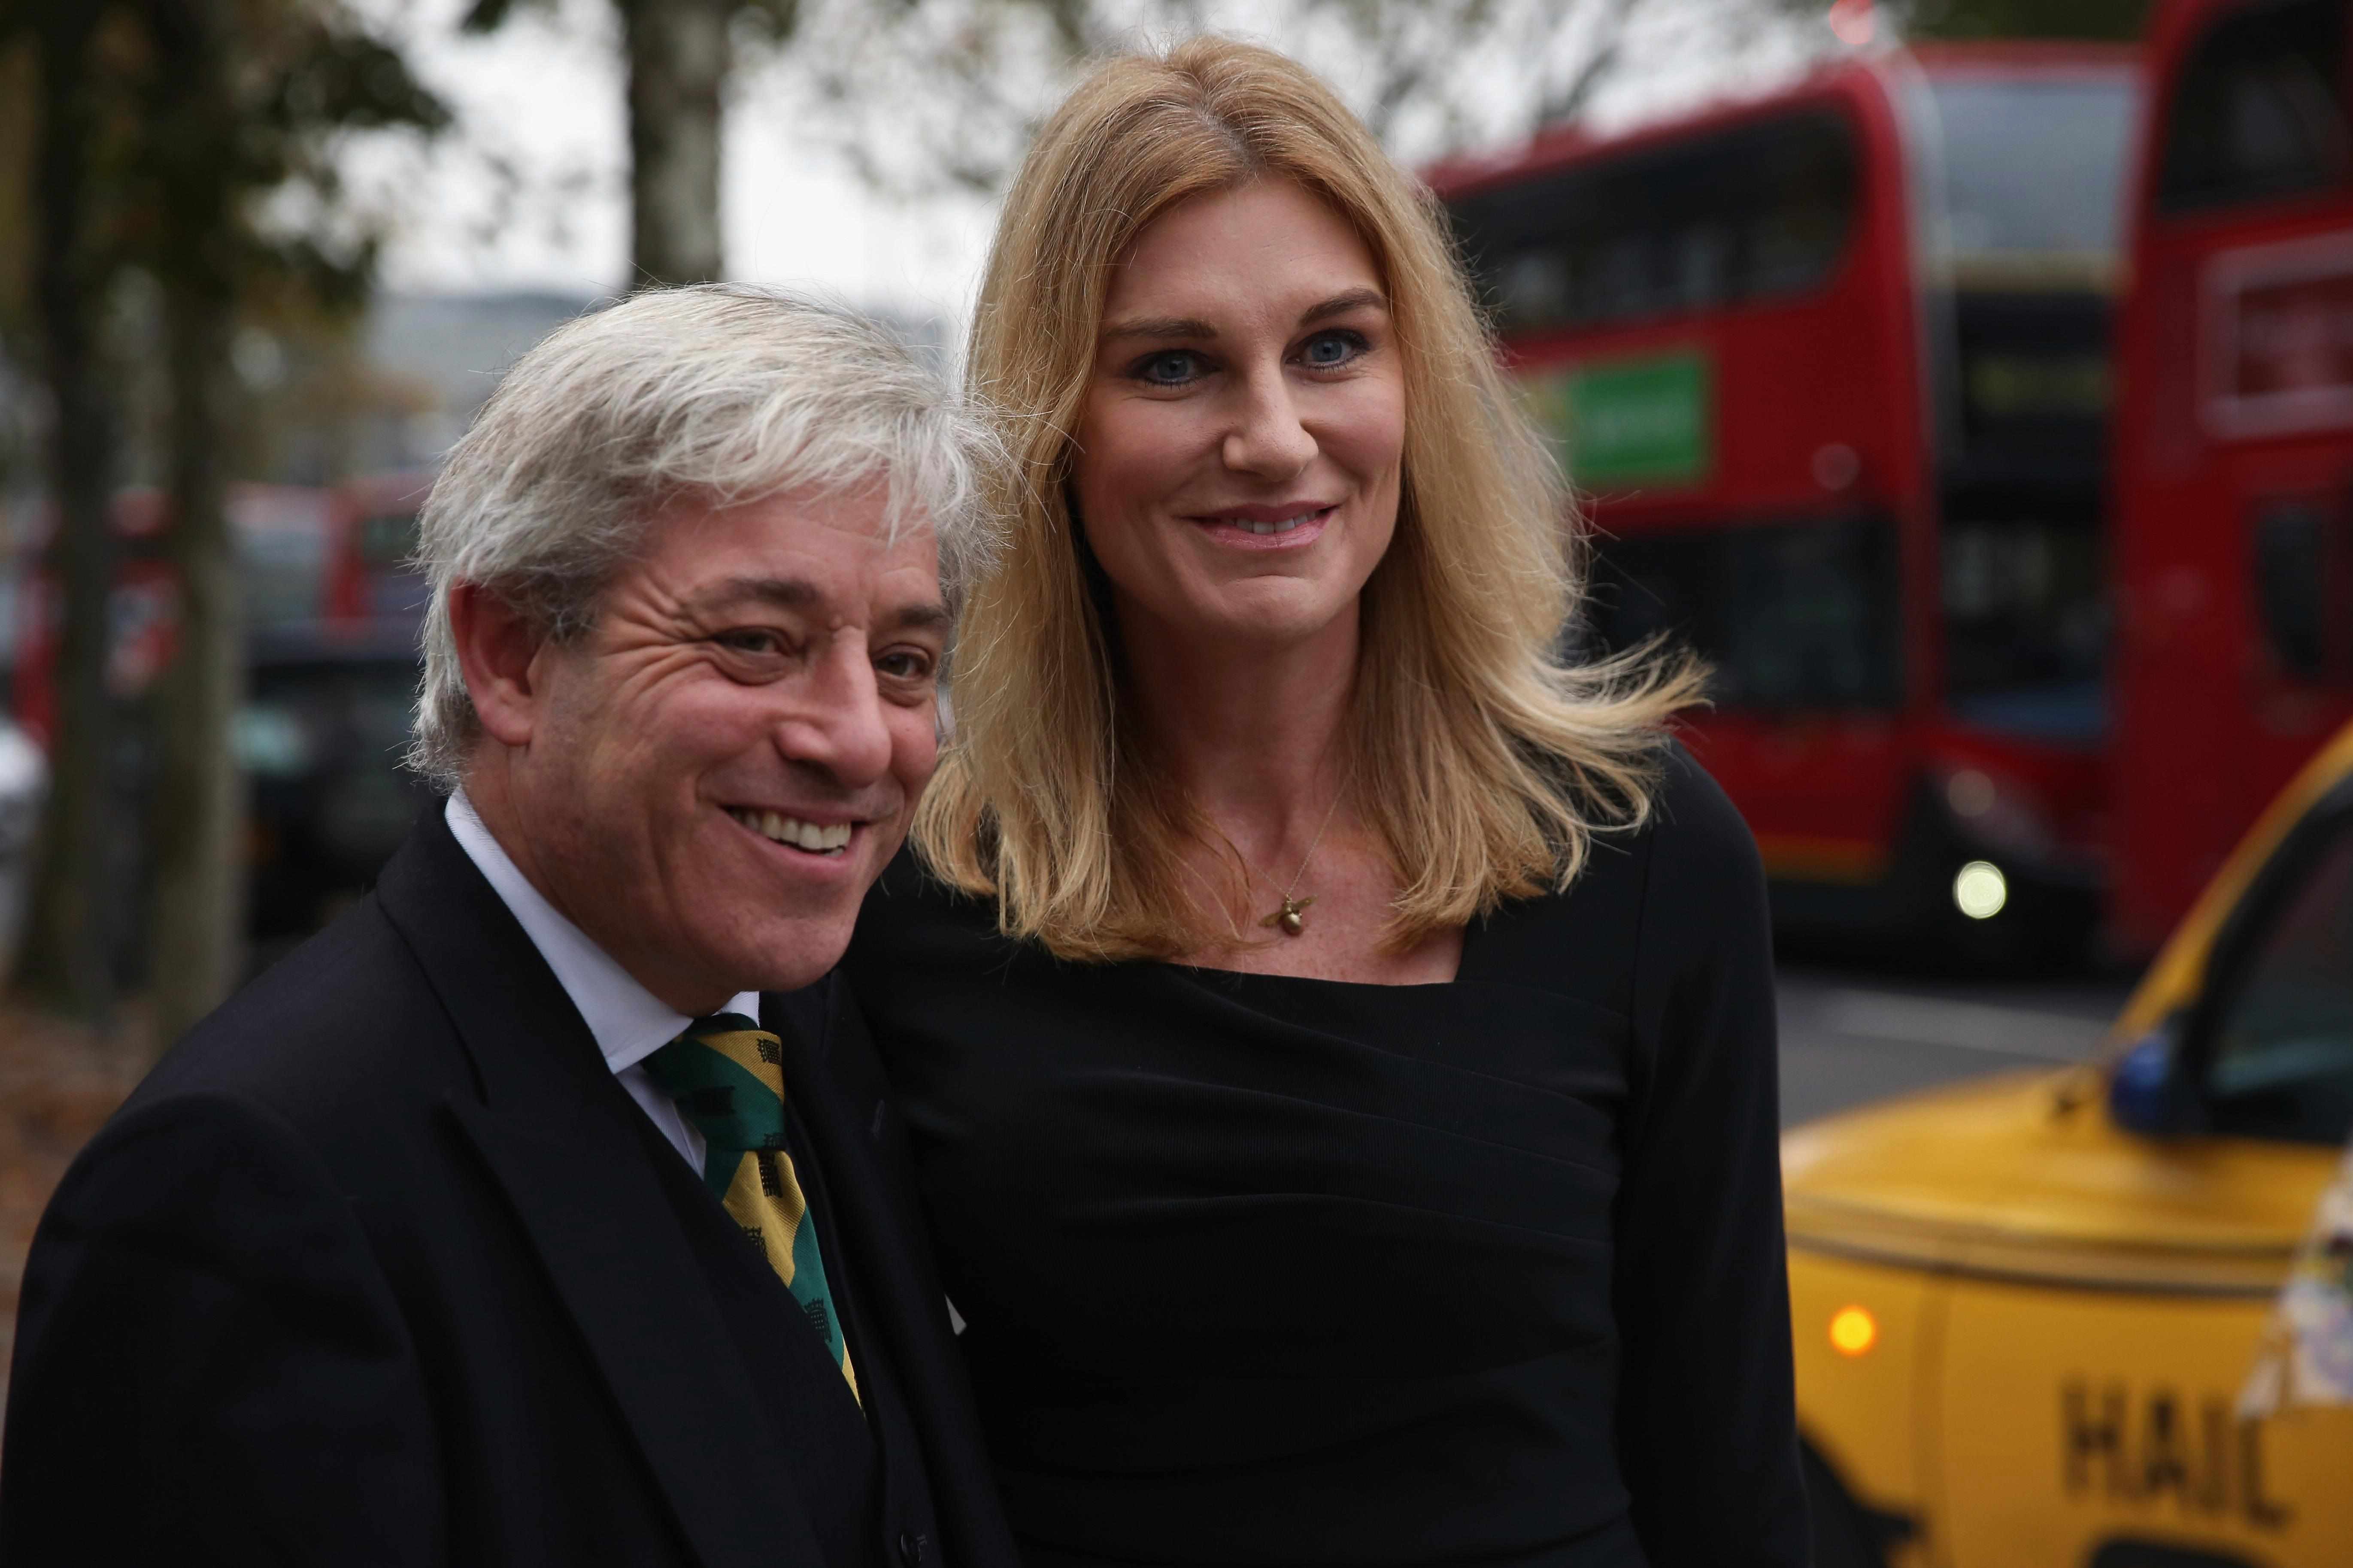 Sally Bercow hired John Worboys as a stripper at Tory event during her time at Oxford University